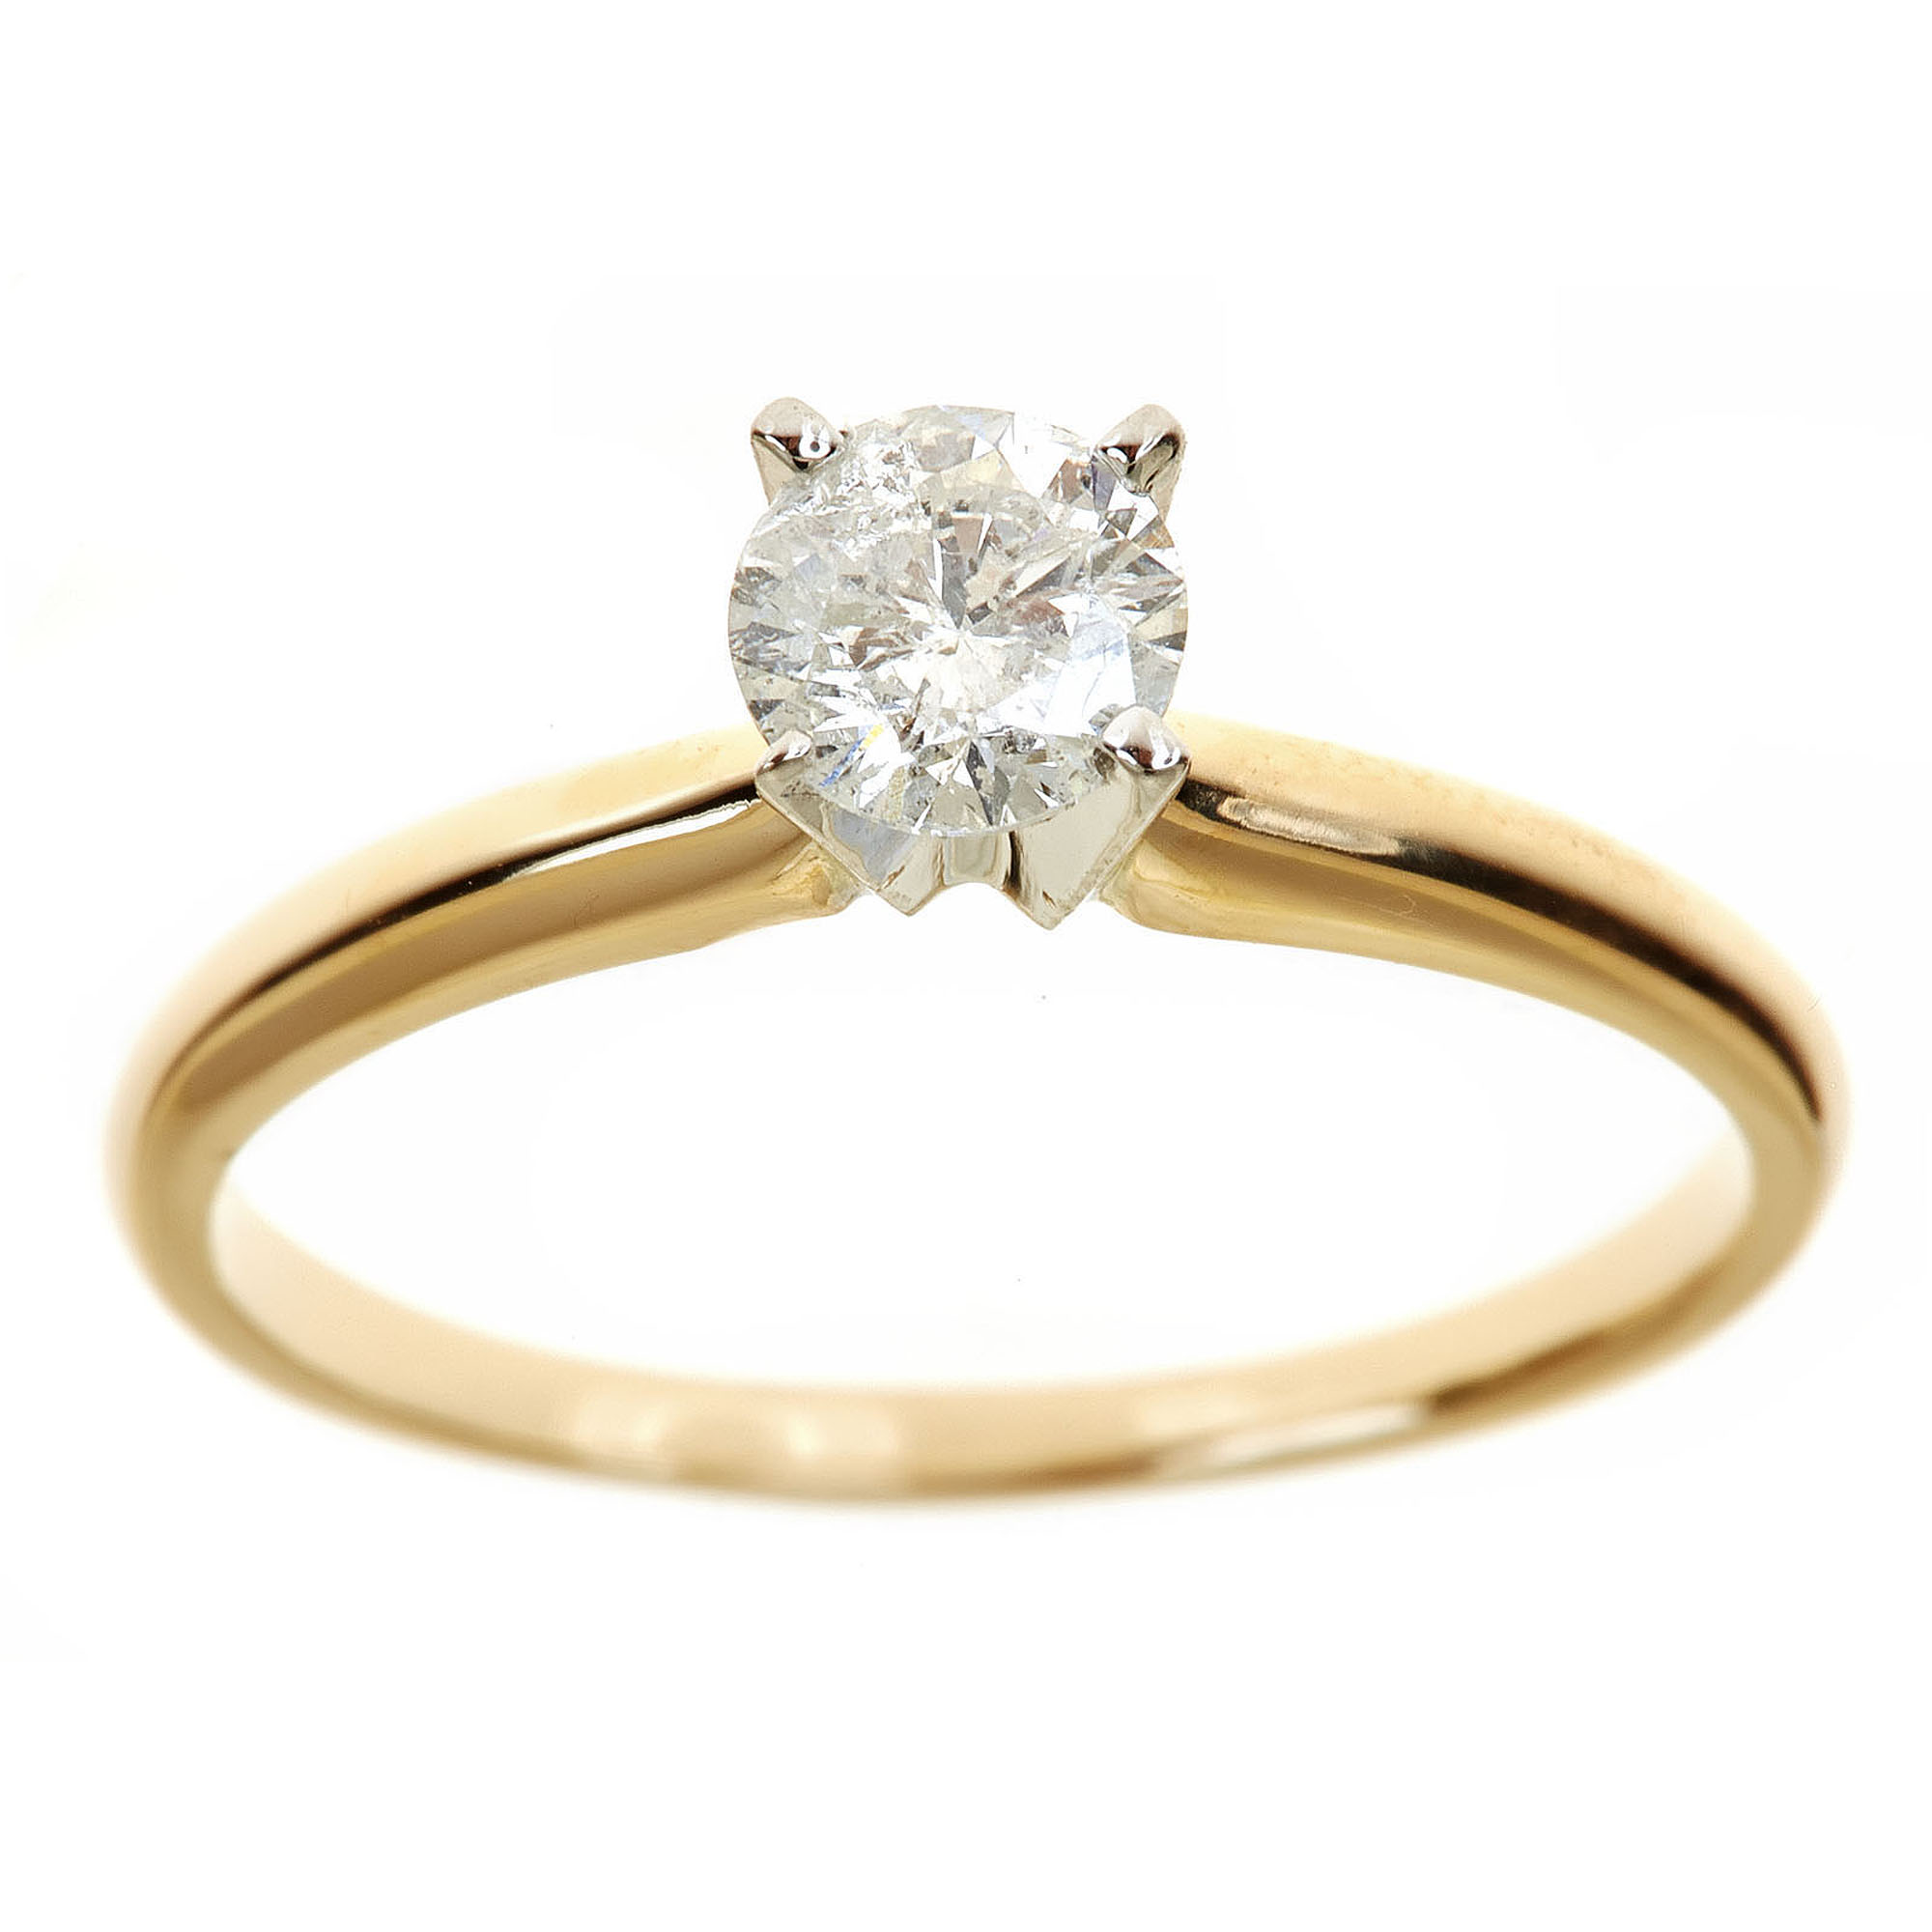 engagement carat ring website tiffany wedding luxus img schmuck rings